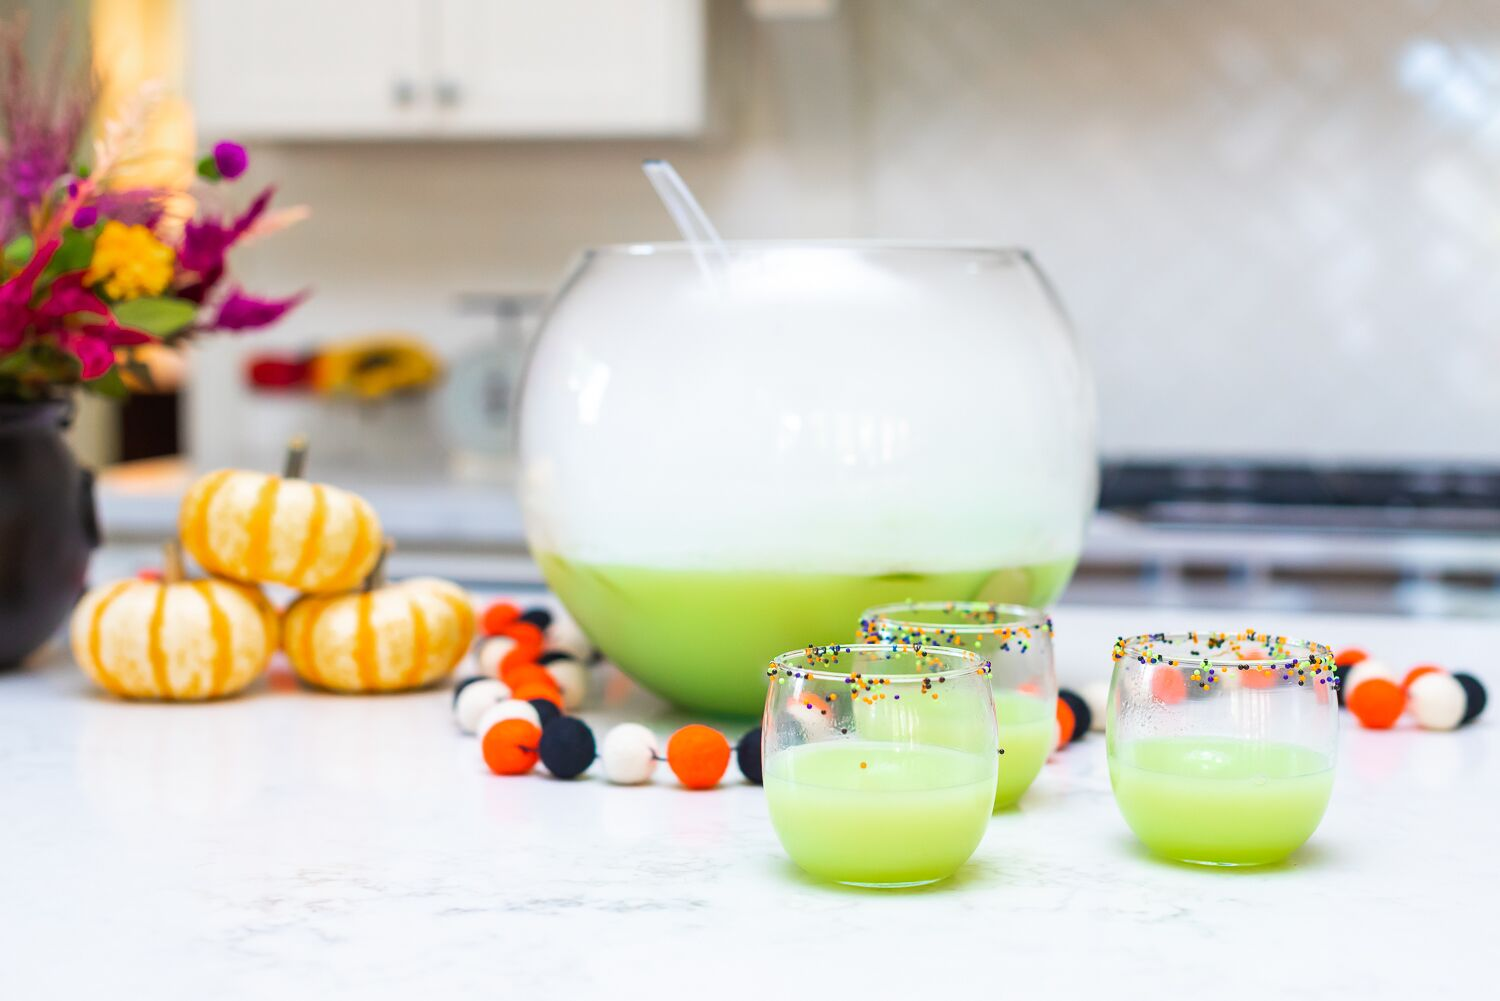 A large punch bowl full of green Hocus Pocus punch, with glasses of punch sitting in front